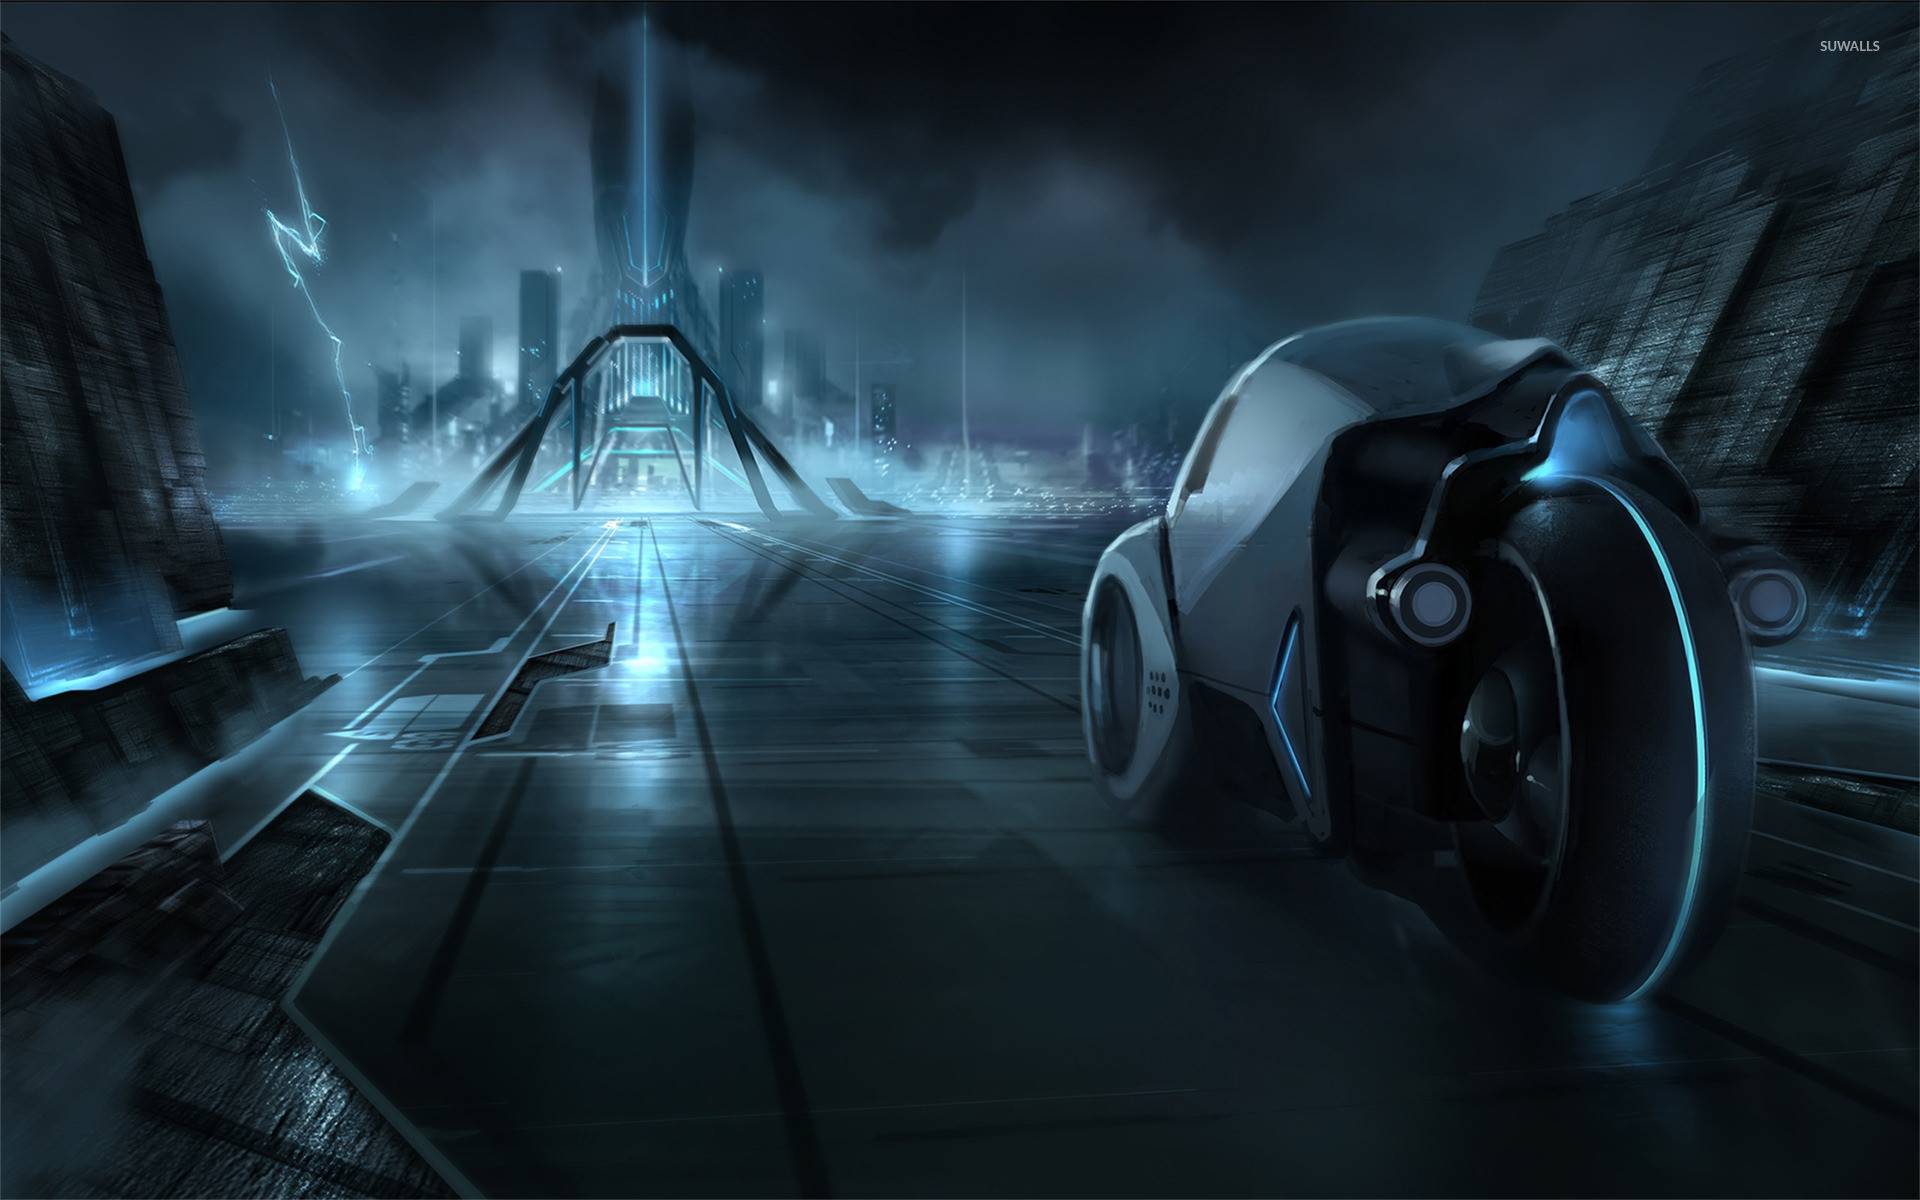 1920x1200 Tron Legacy Light Cycle HD desktop wallpaper High Definition